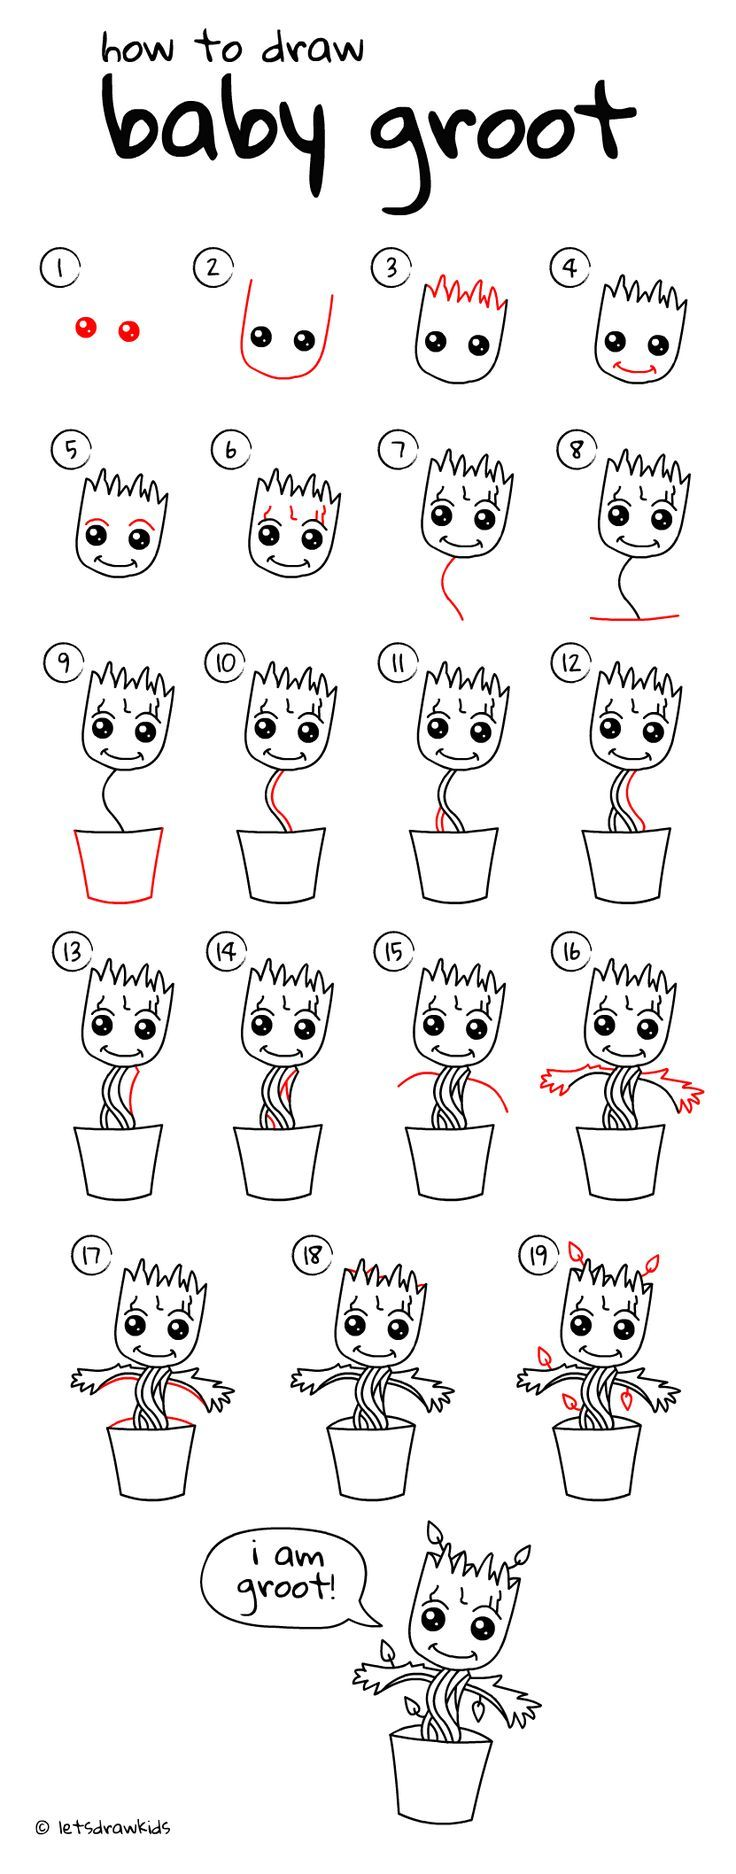 Drawing Designs – How to draw Baby Groot. Easy drawing, step by step, perfect for kids! Let's draw